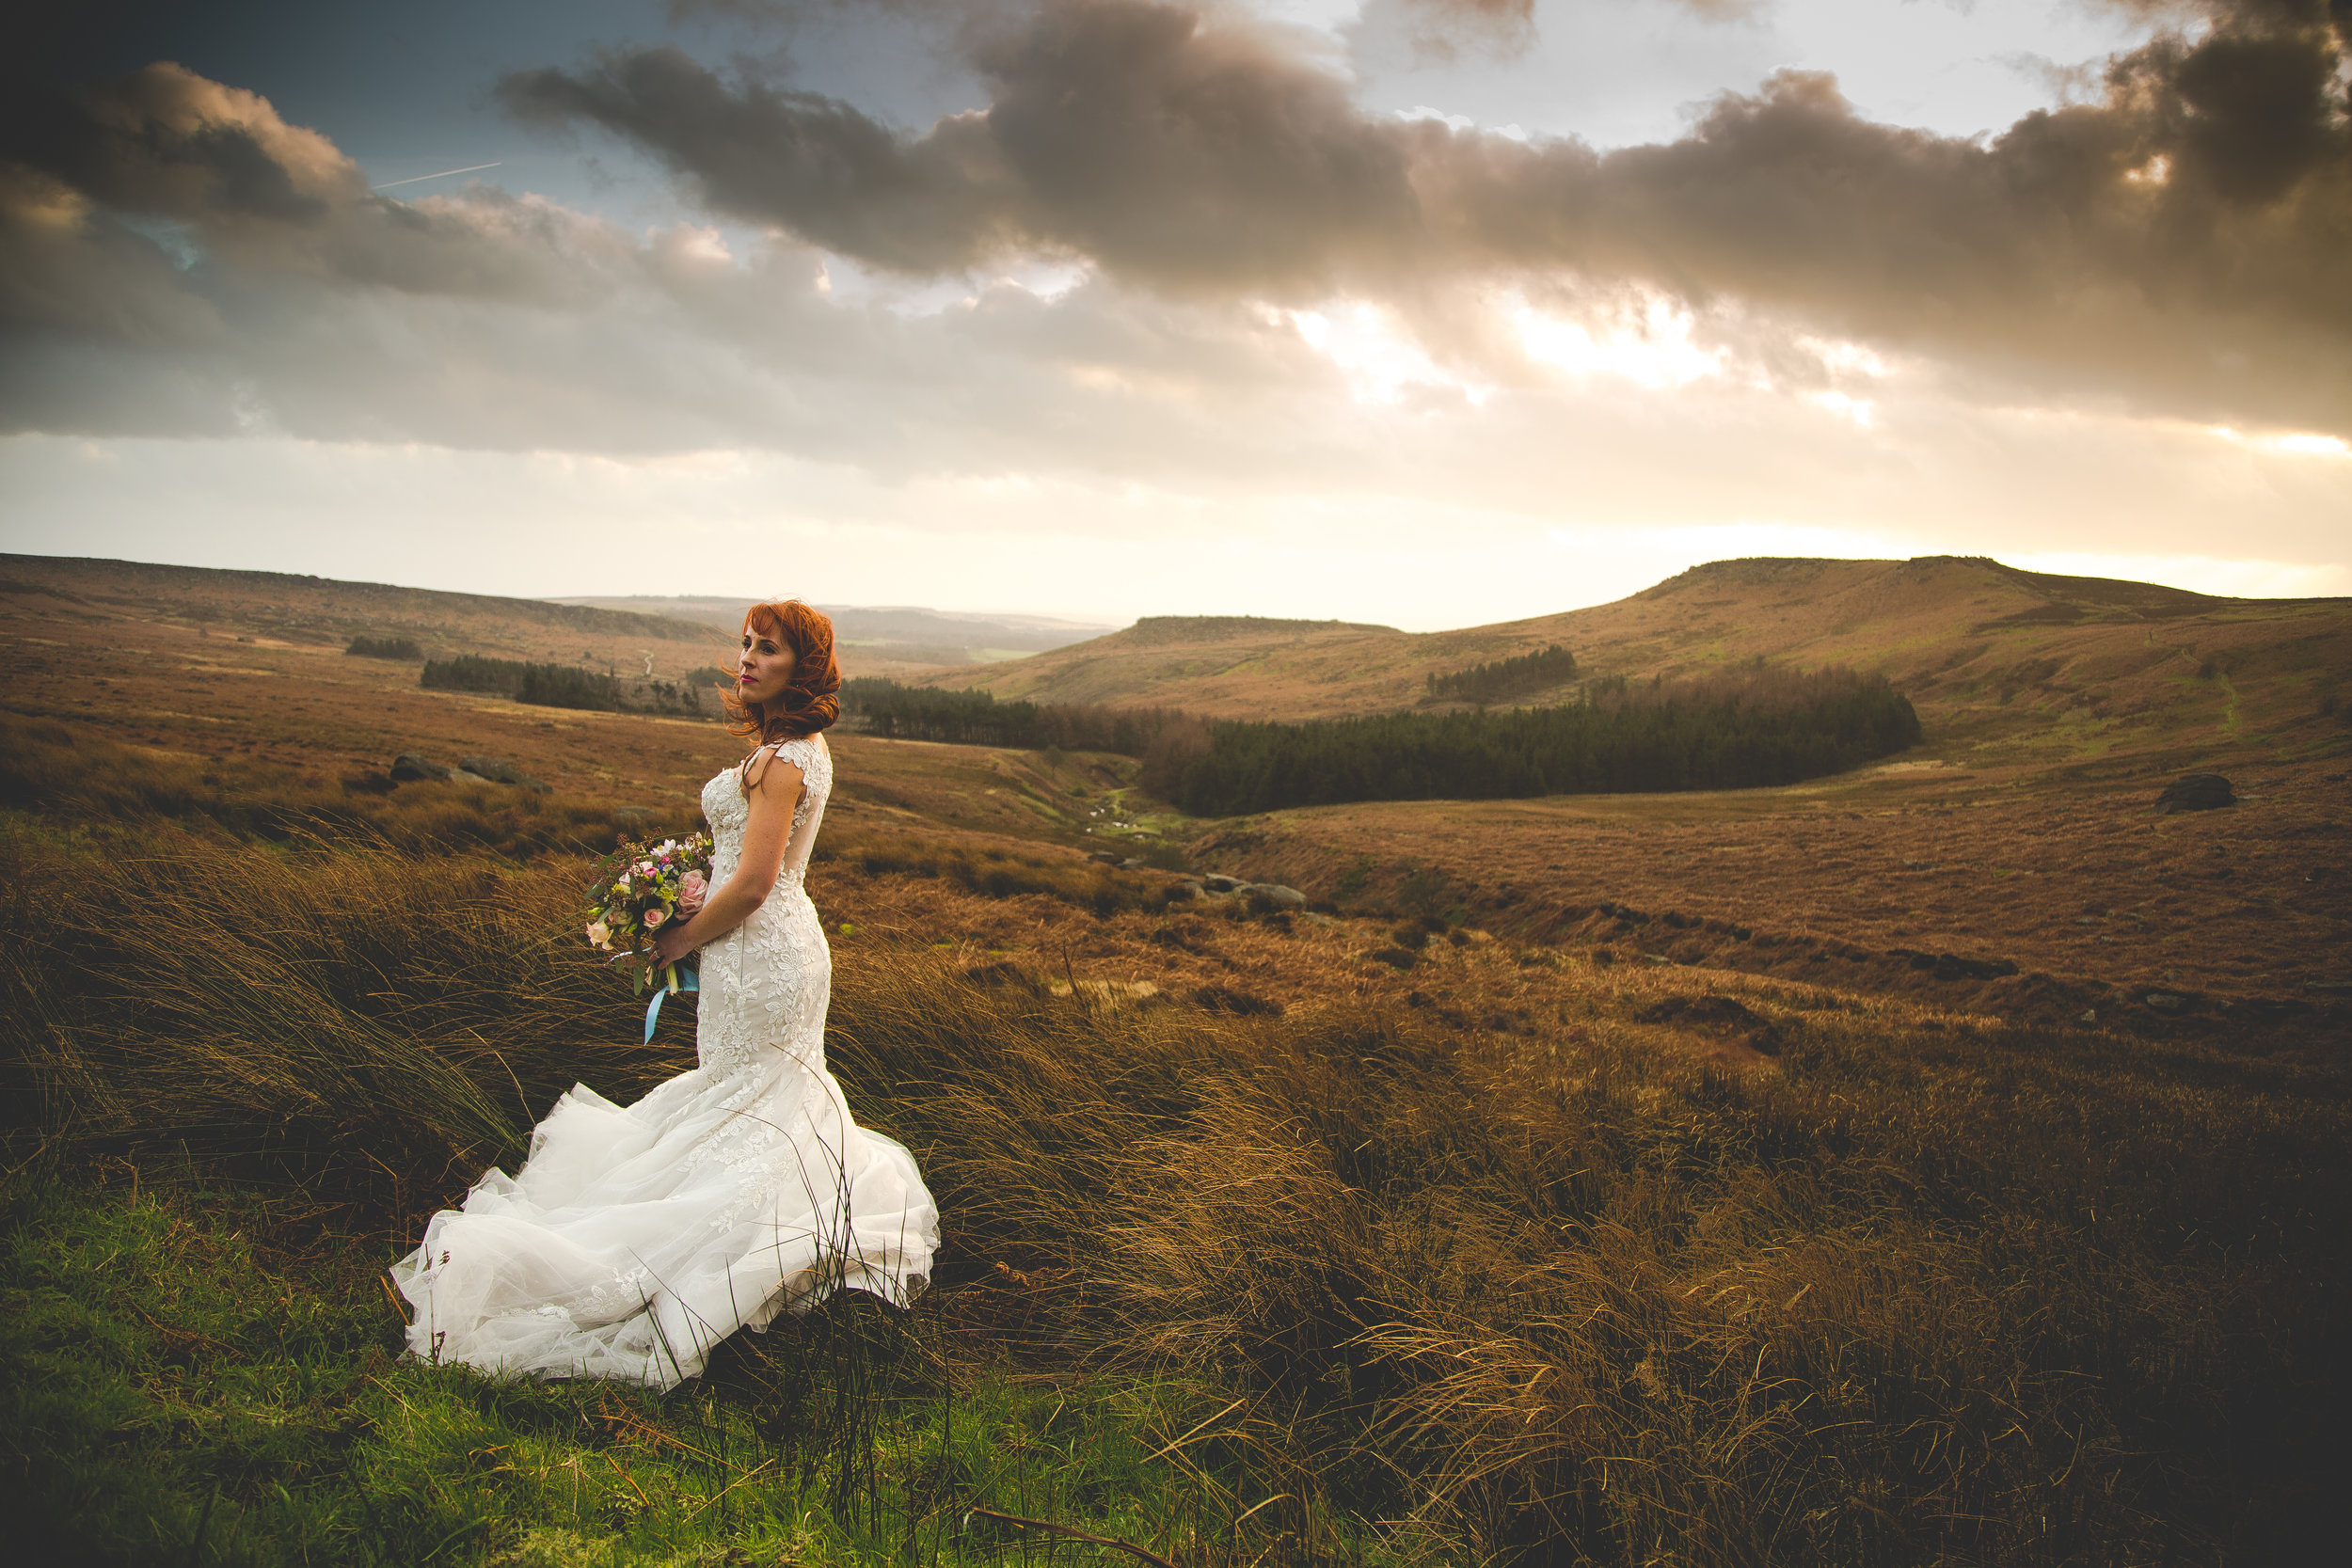 Captured on the Sheffield Moors purely to get that Fine Art Wedding Photography look. The light, the landscape, the pose….illustrates it perfectly